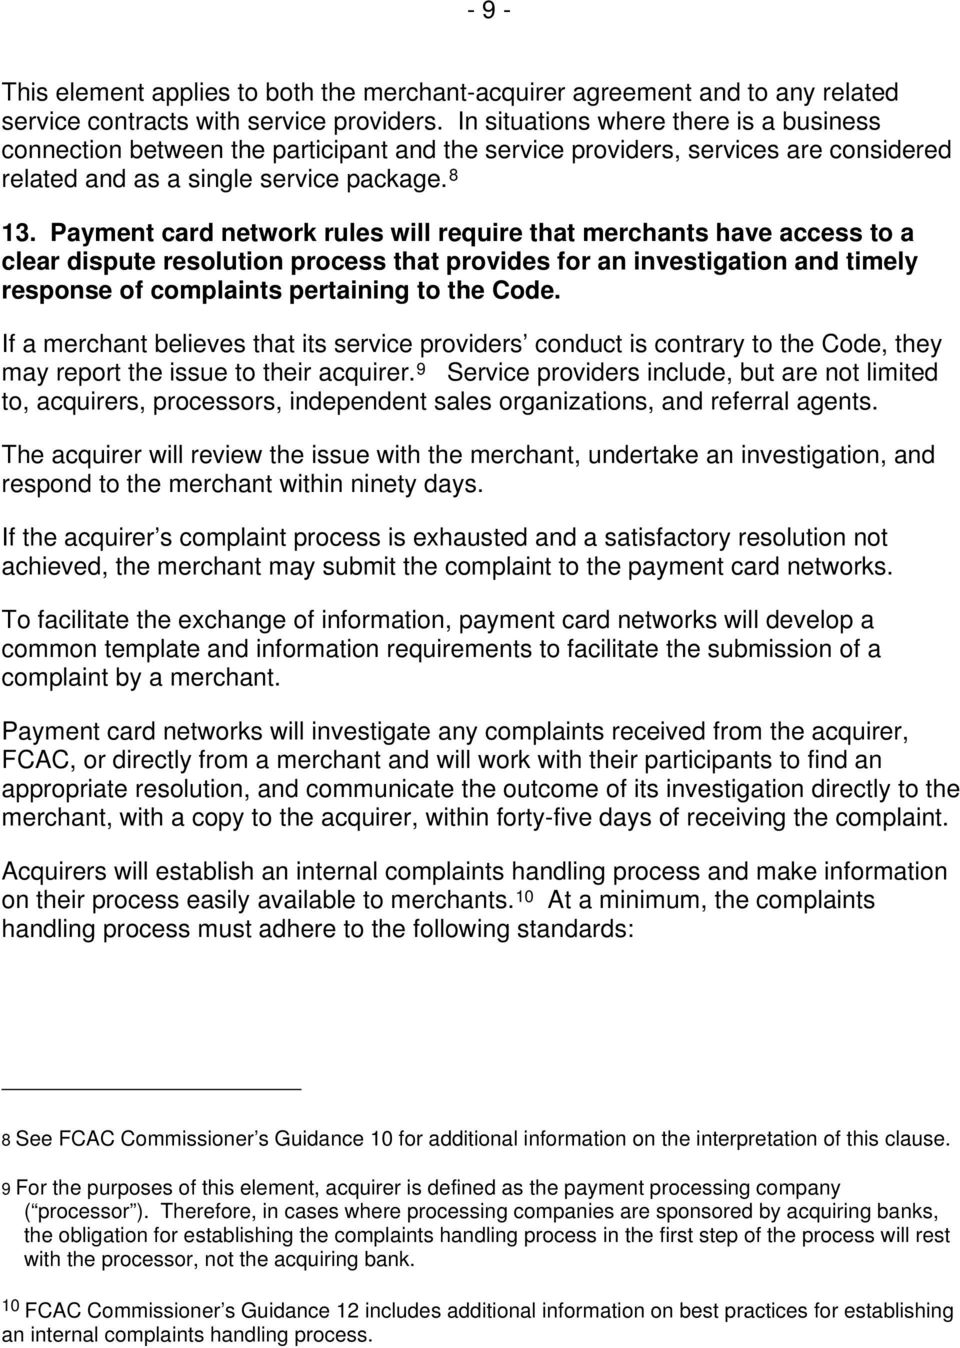 Payment card network rules will require that merchants have access to a clear dispute resolution process that provides for an investigation and timely response of complaints pertaining to the Code.